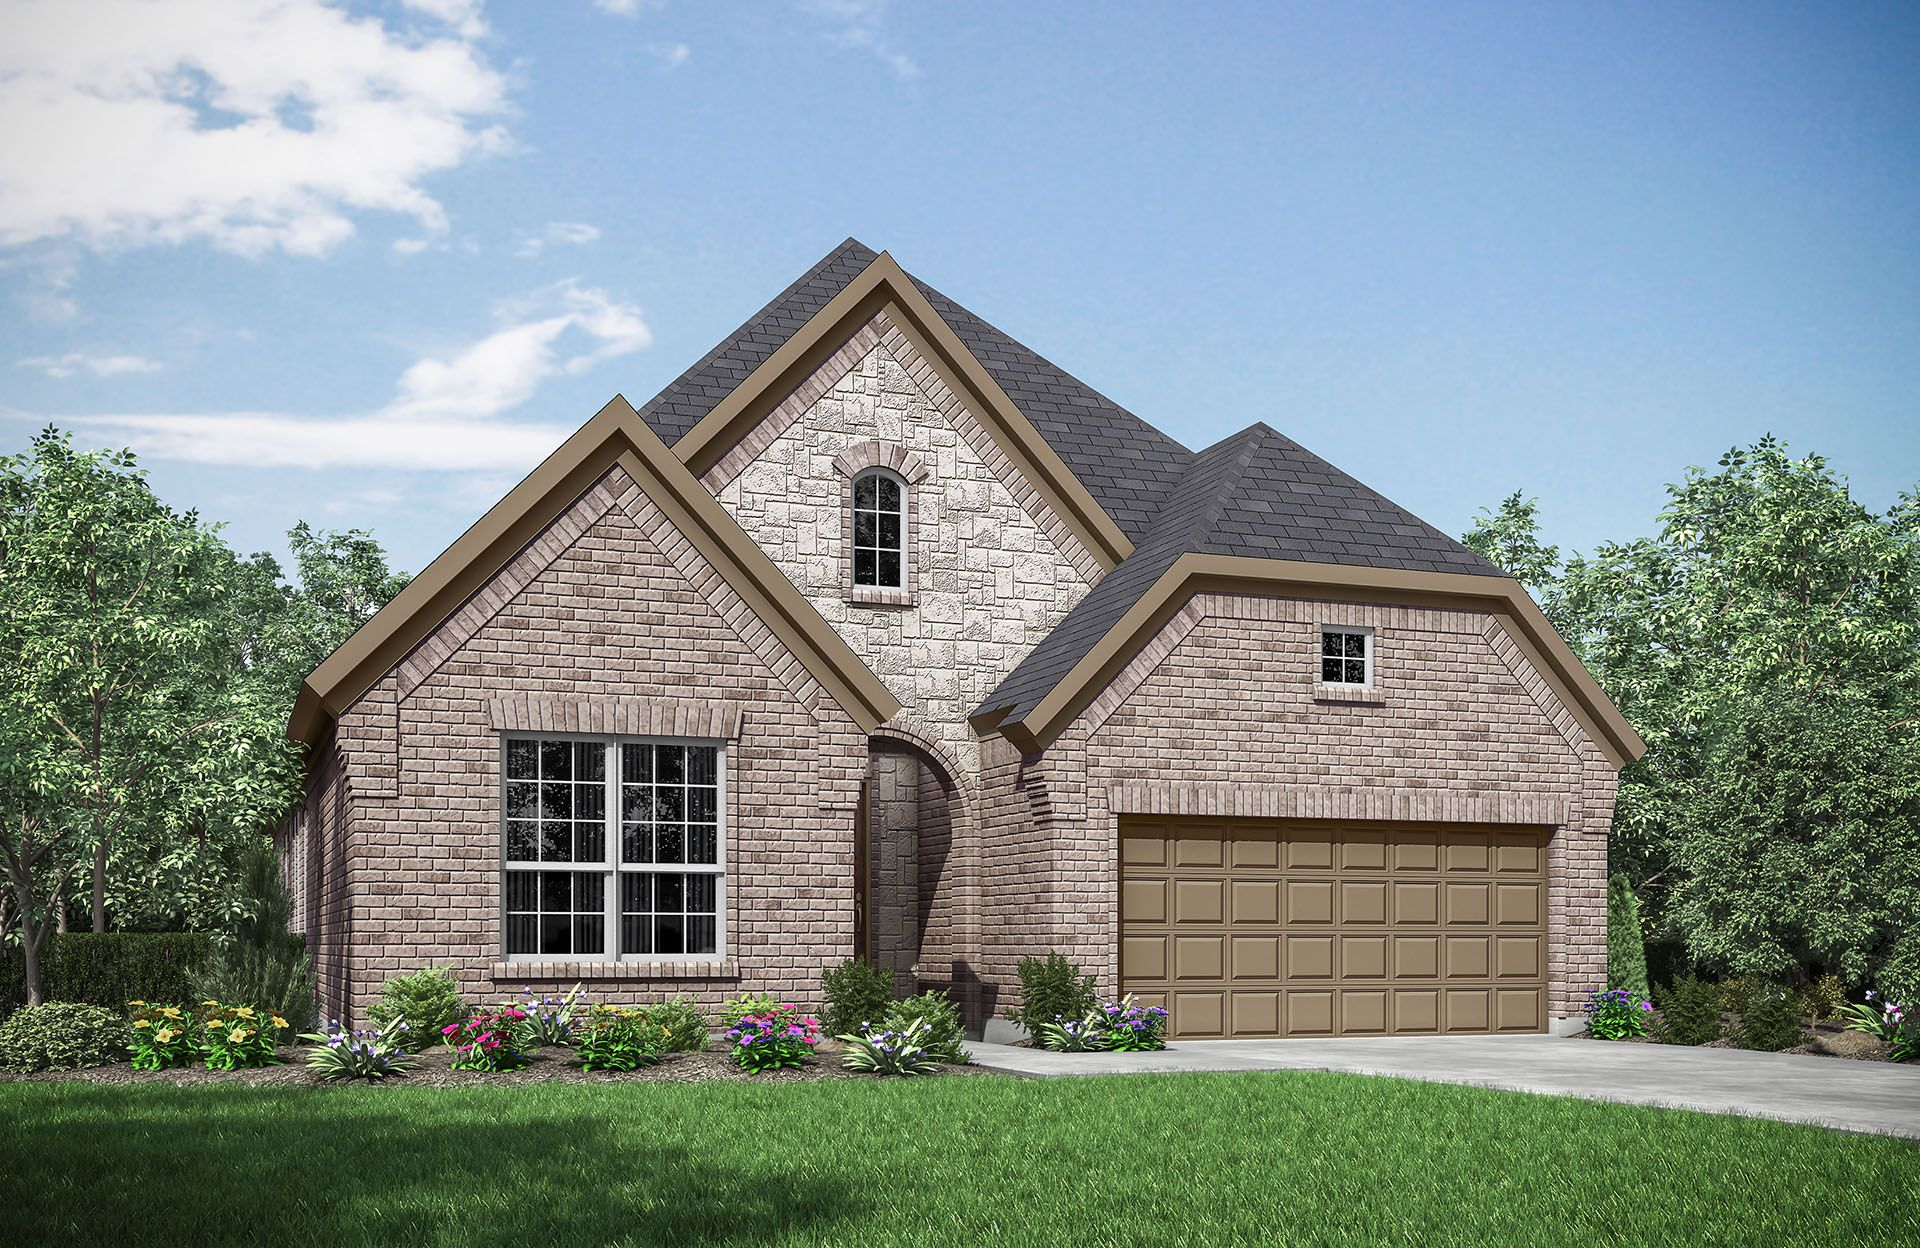 Single Family for Active at Auburn Iv 2 Sadie Court Trophy Club, Texas 76262 United States